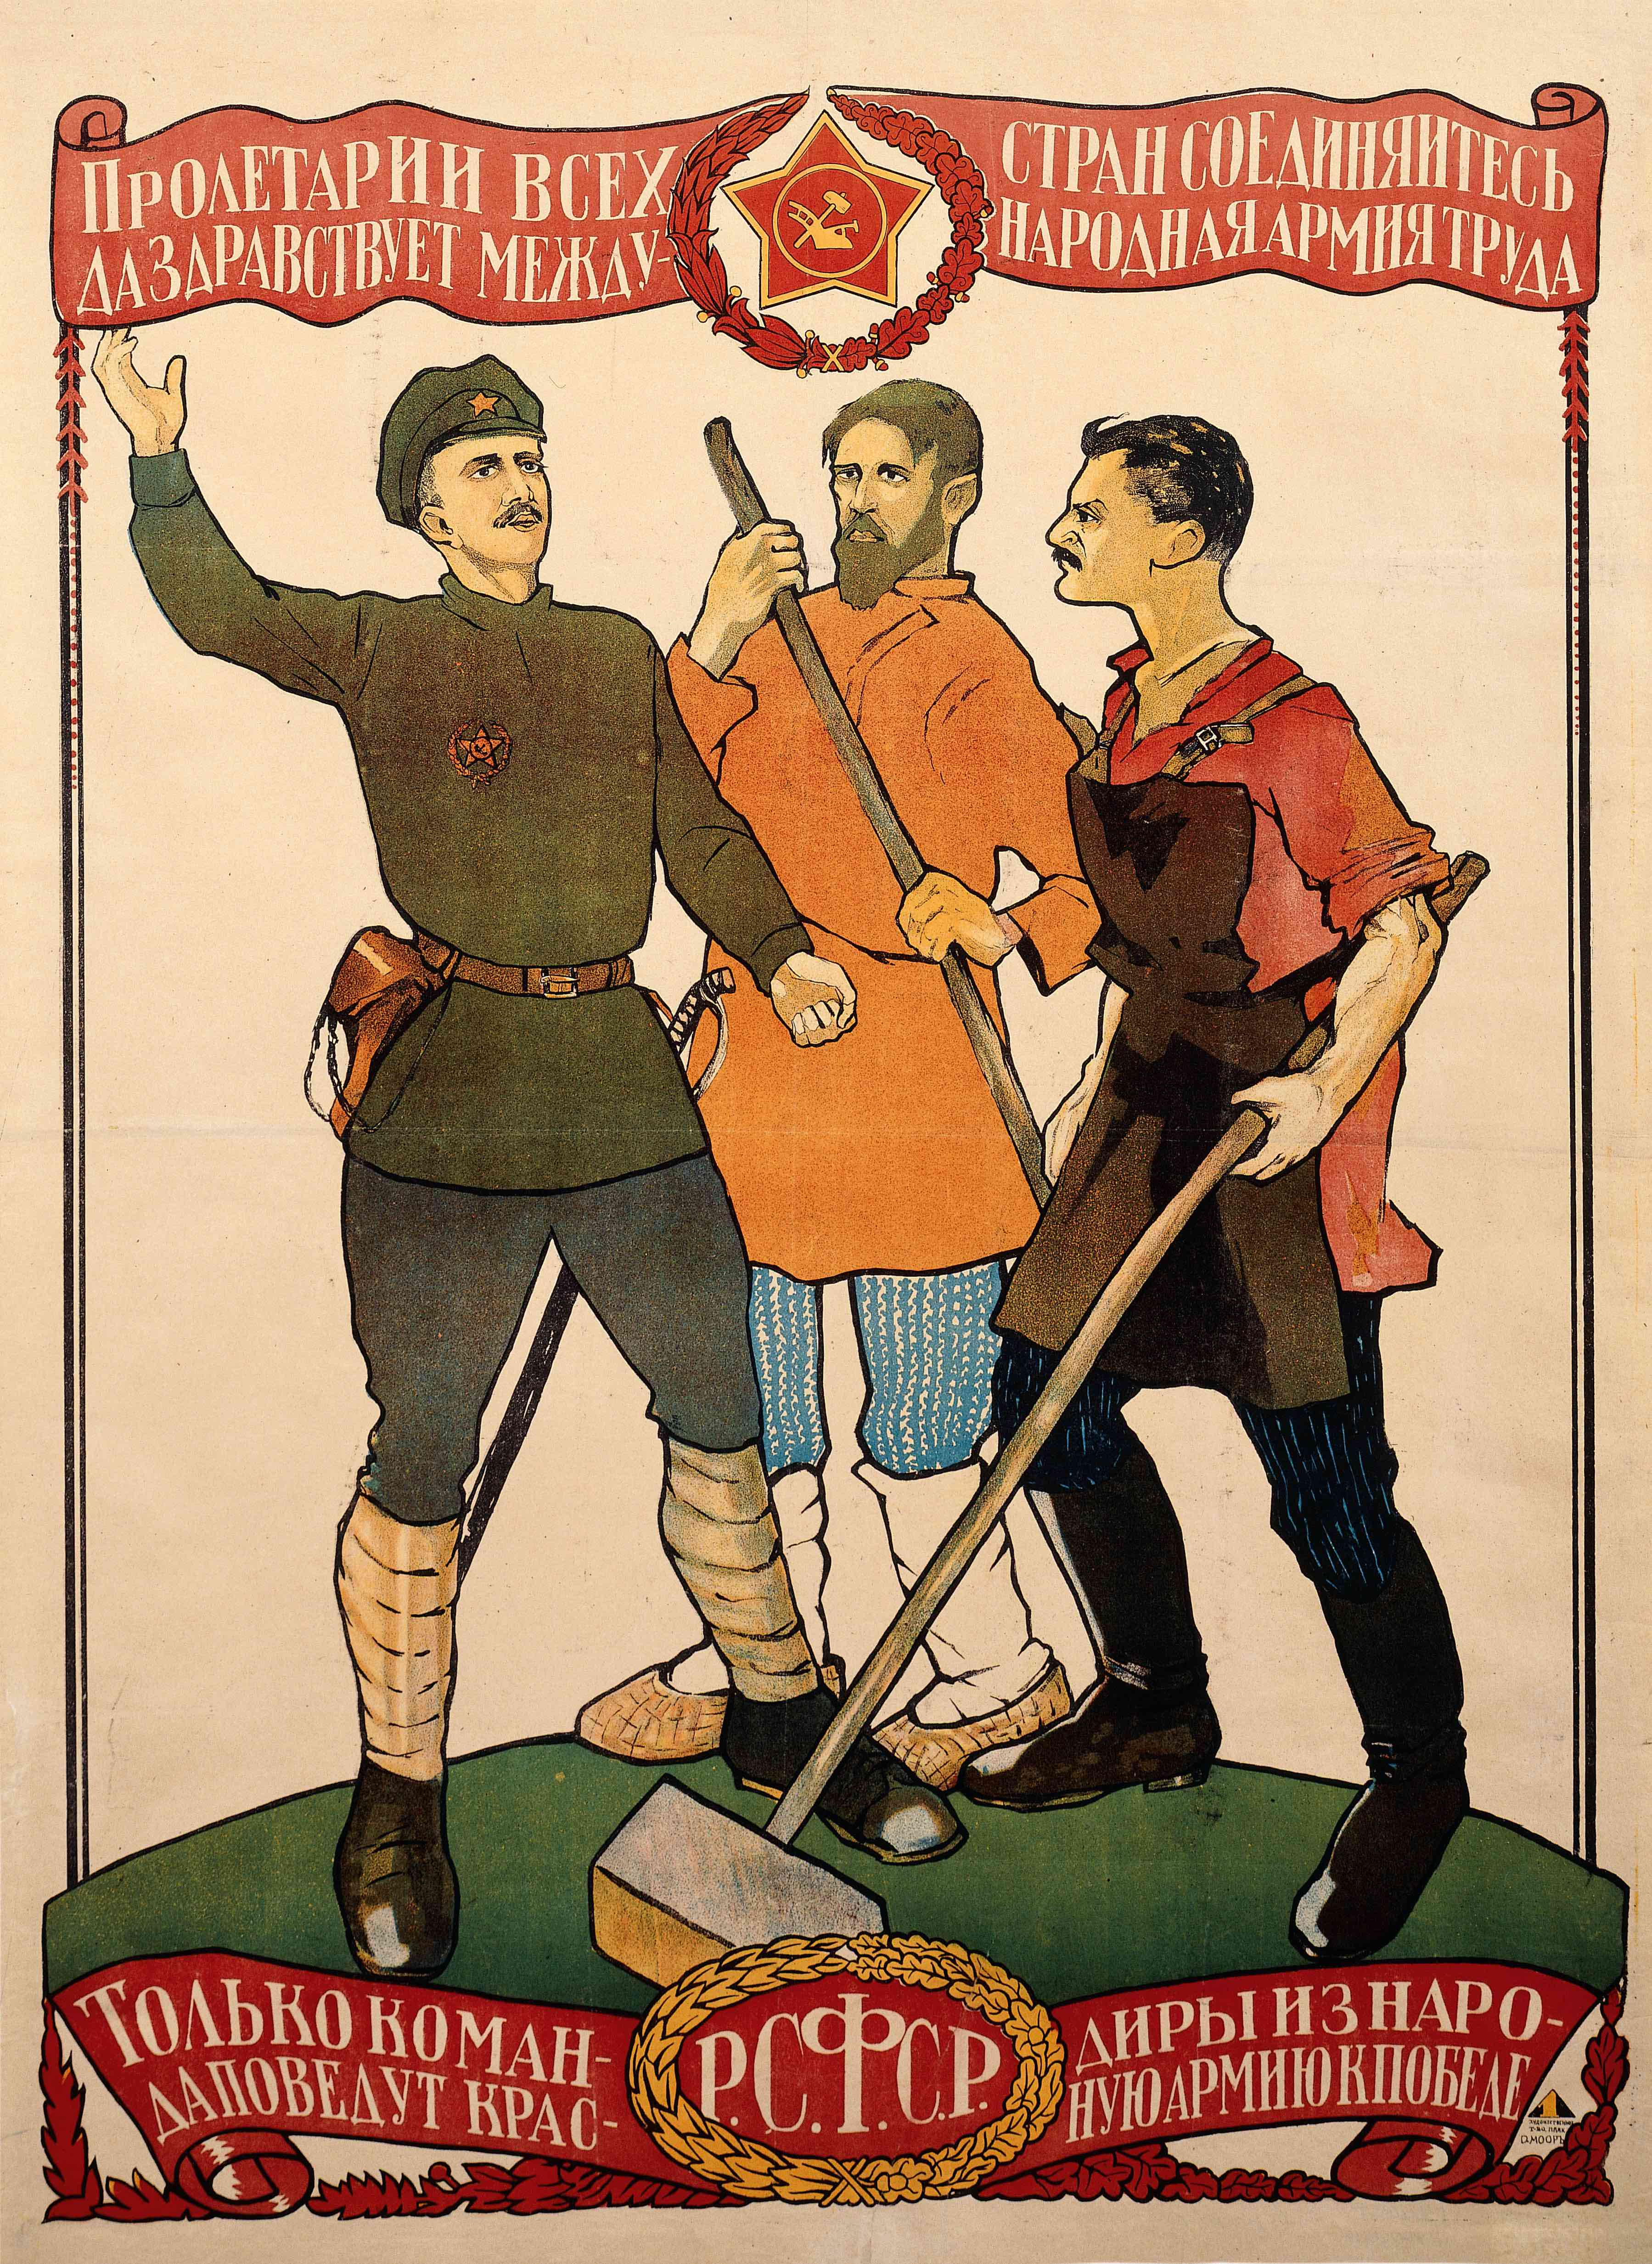 Proletarians of all Lands, Unite, Dmitrii Moor, 1918. Purchased 2016. The David King Collection at Tate